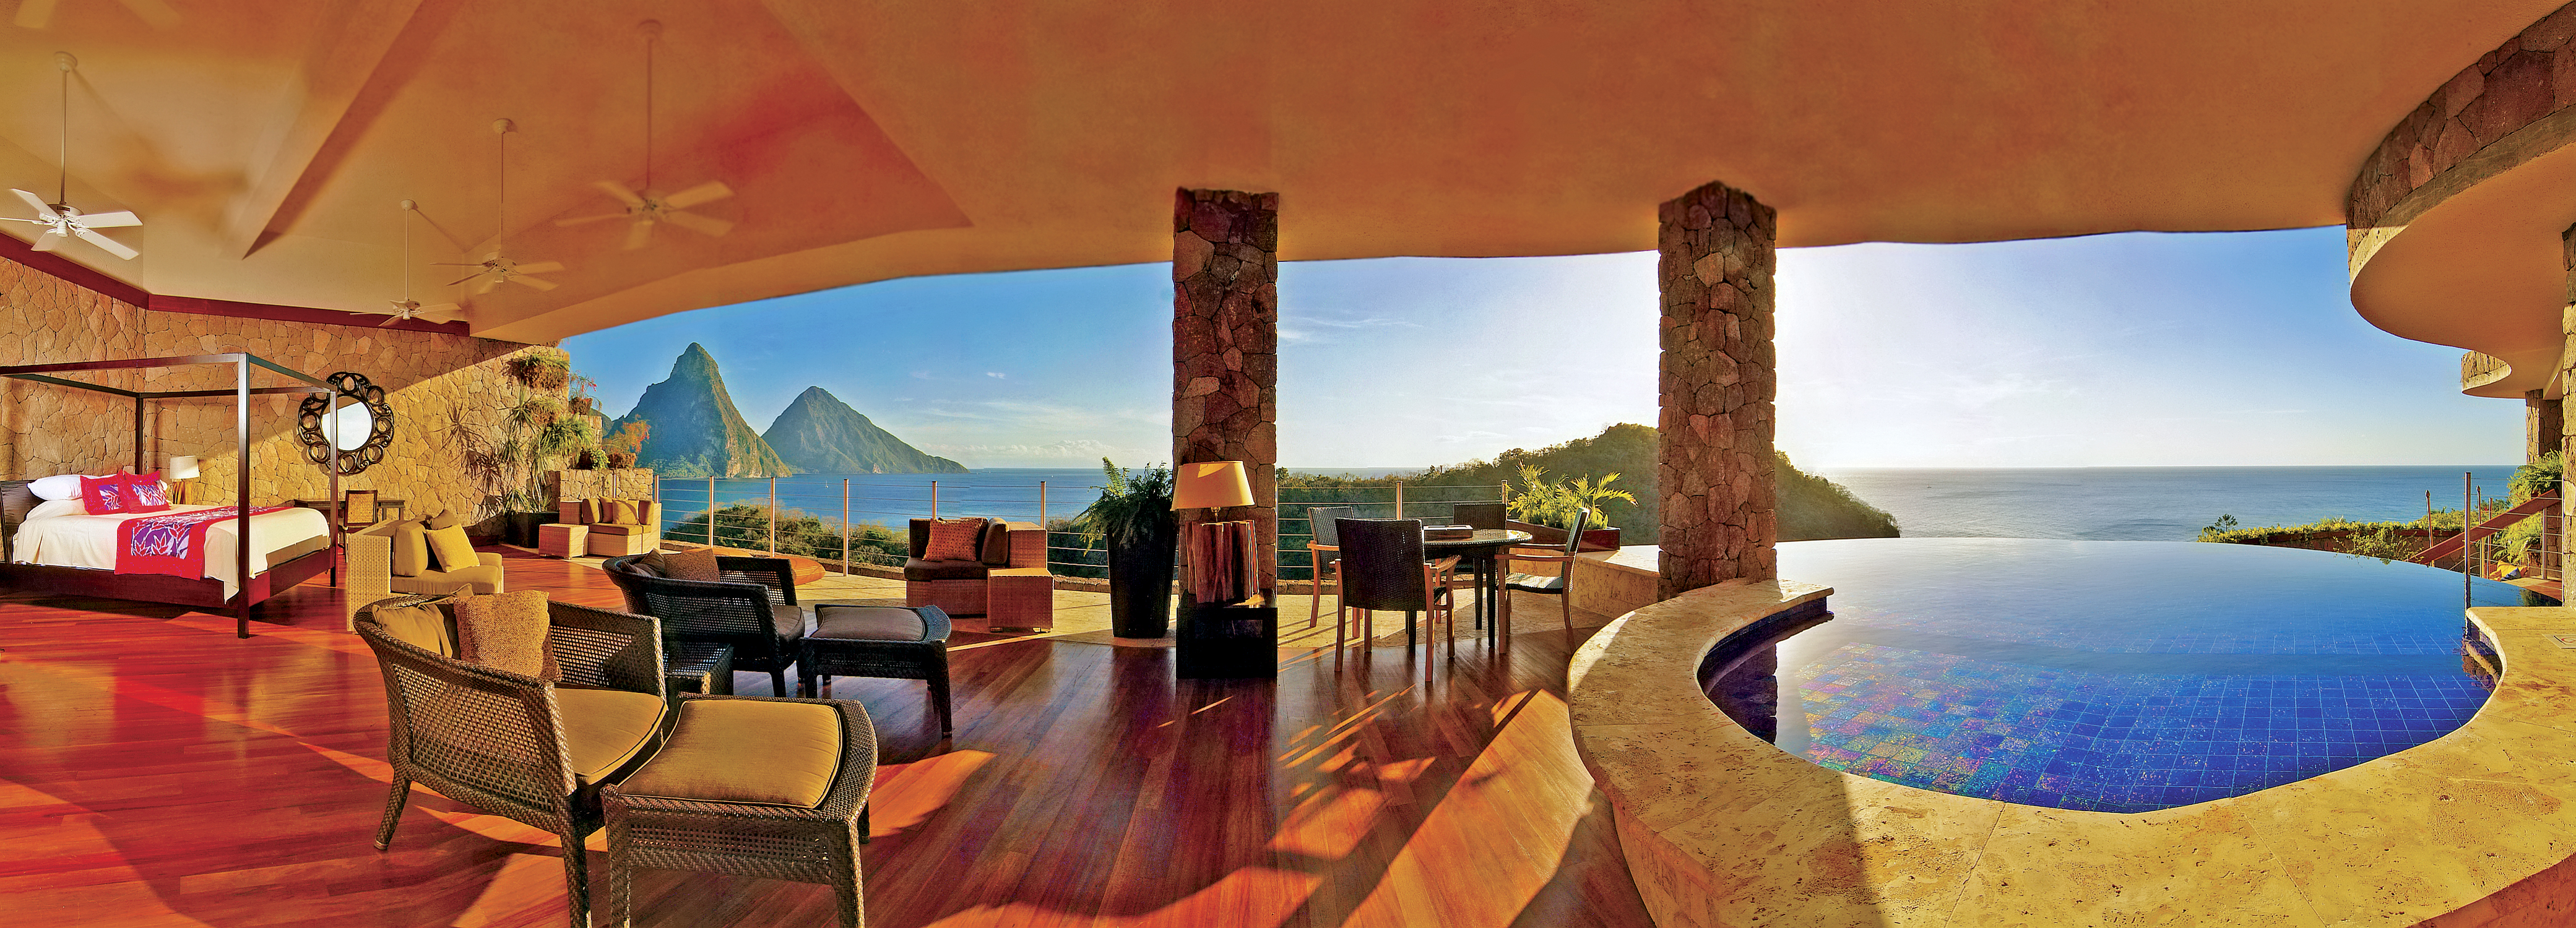 Review of the jade mountain resort amazing st lucia views spot jadepan1 the best view from a brhotel room in the caribbean publicscrutiny Image collections